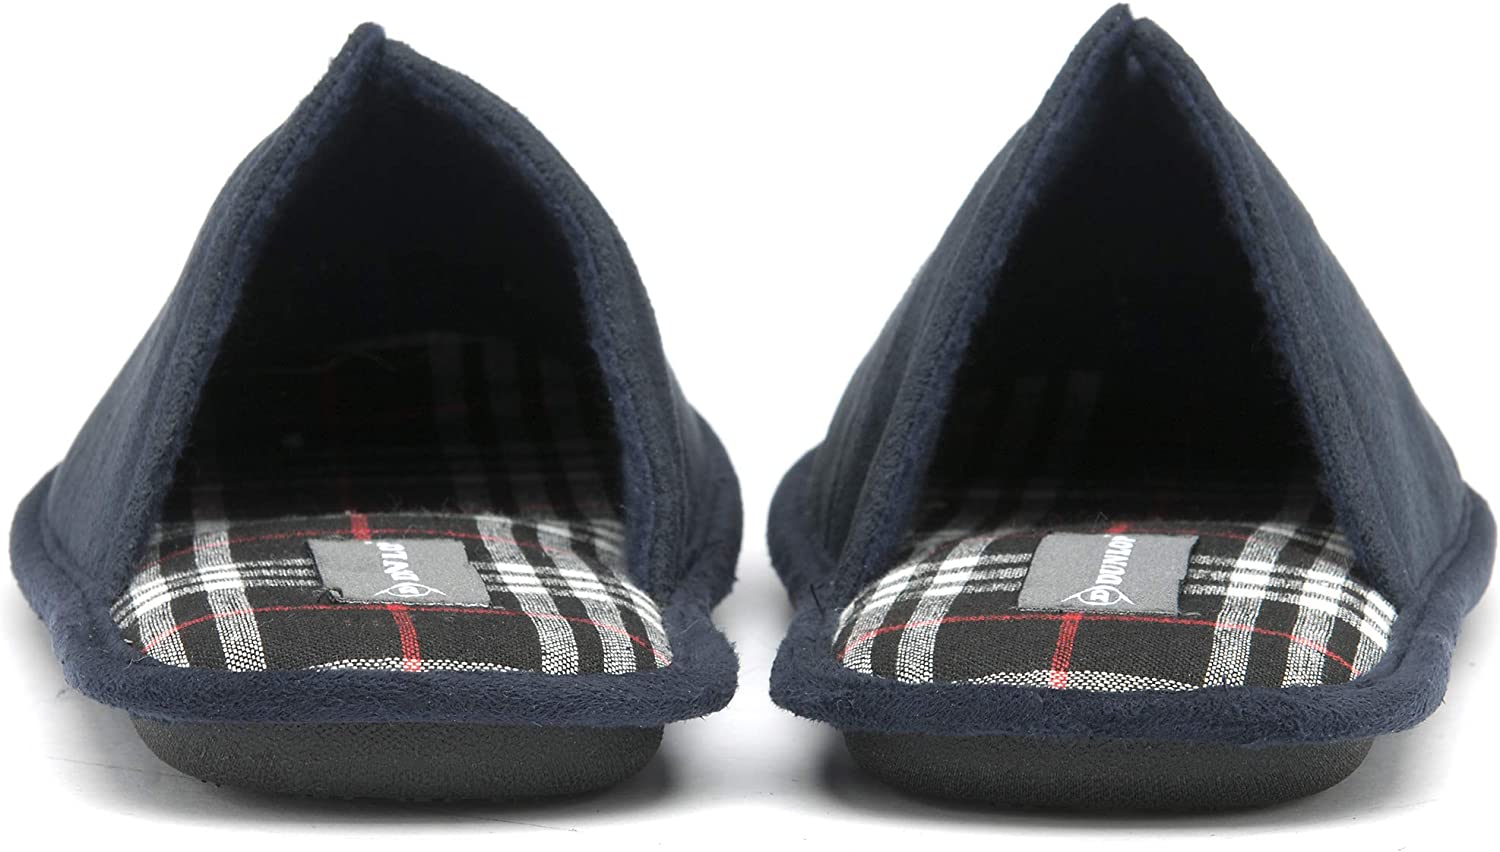 Dunlop Mens Slippers Slip On Mule Faux Suede Check Lined Memory Foam Sizes S M L